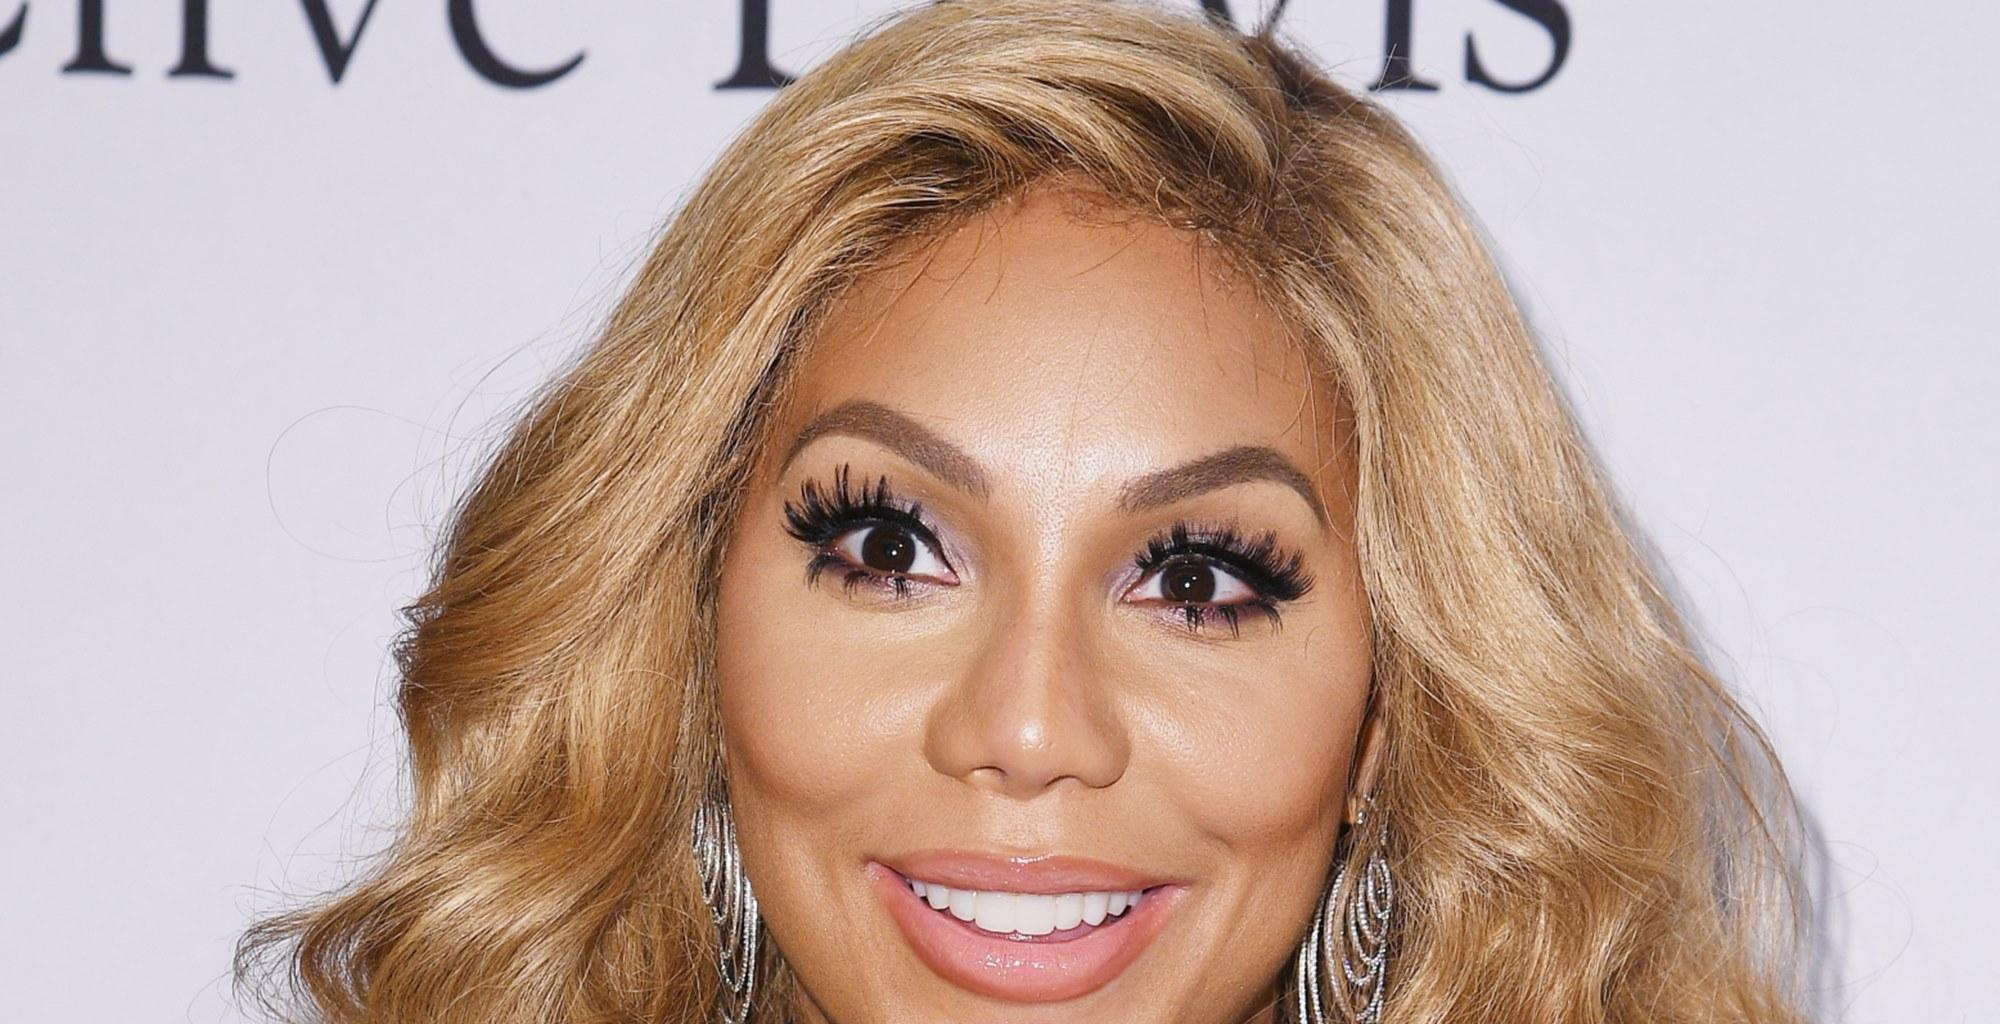 Tamar Braxton Also Shows Support For Black-Female Business Owners